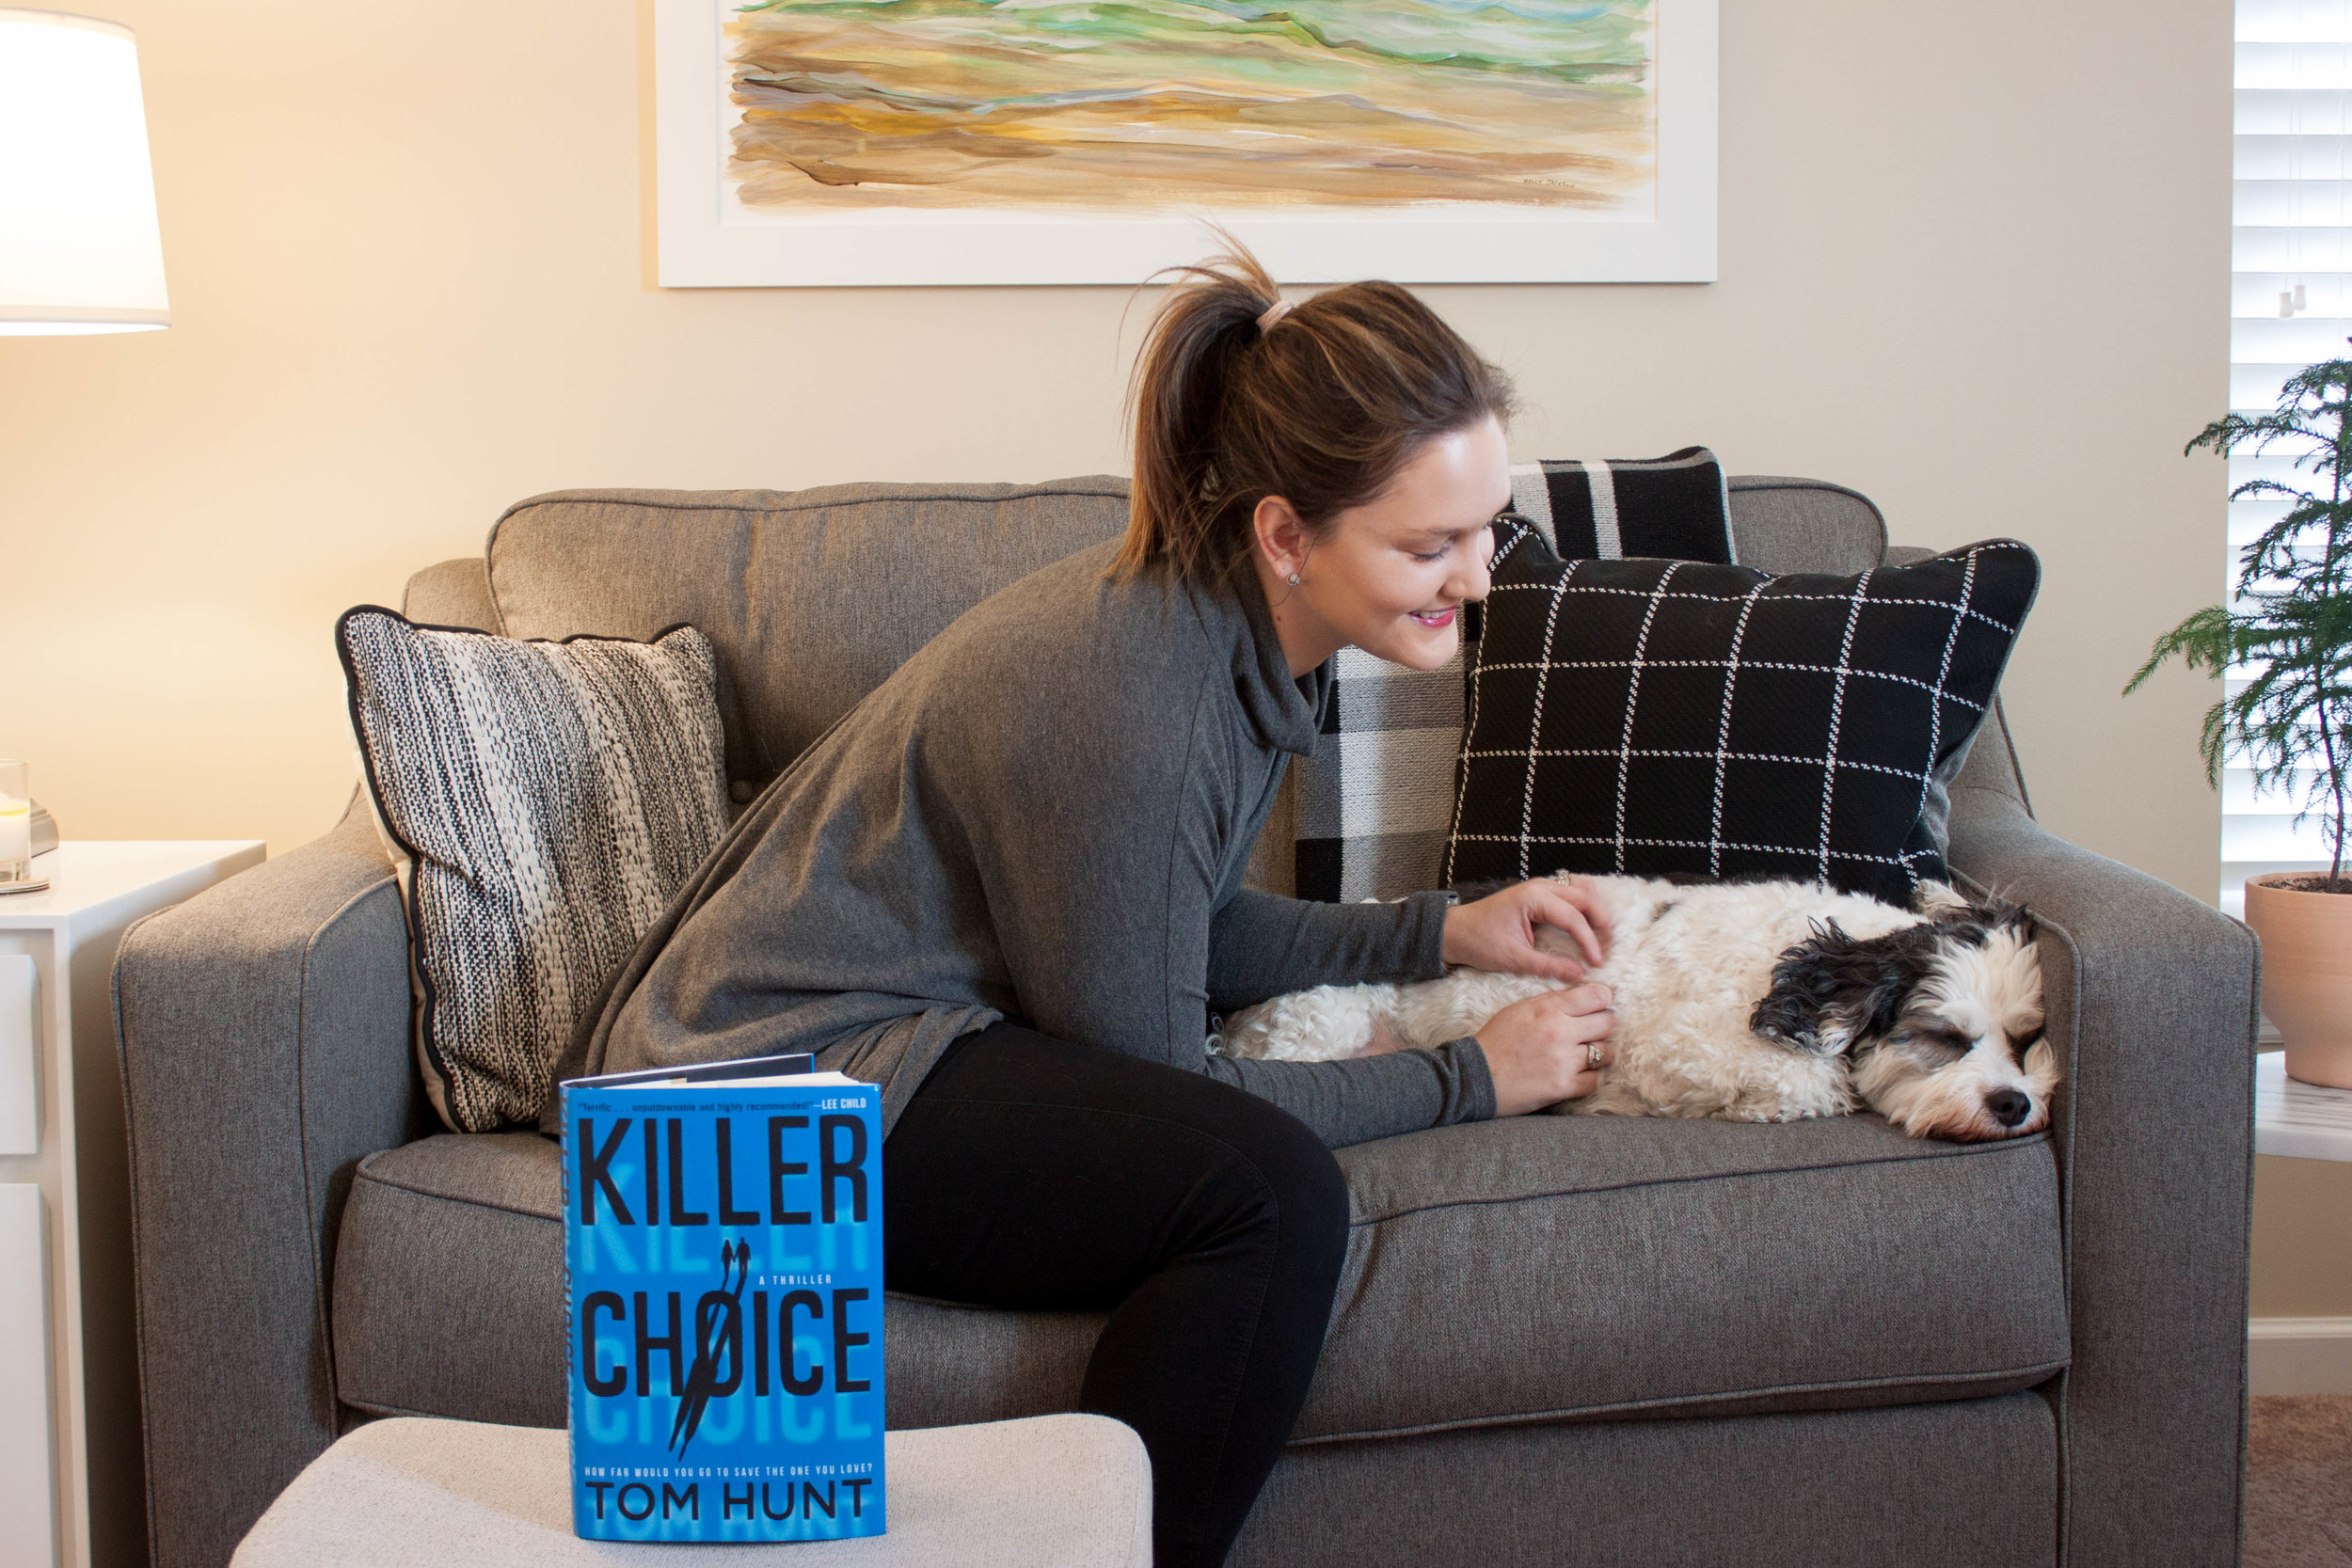 Reading Killer Choice by Tom Hunt at home with my dog, Huxley